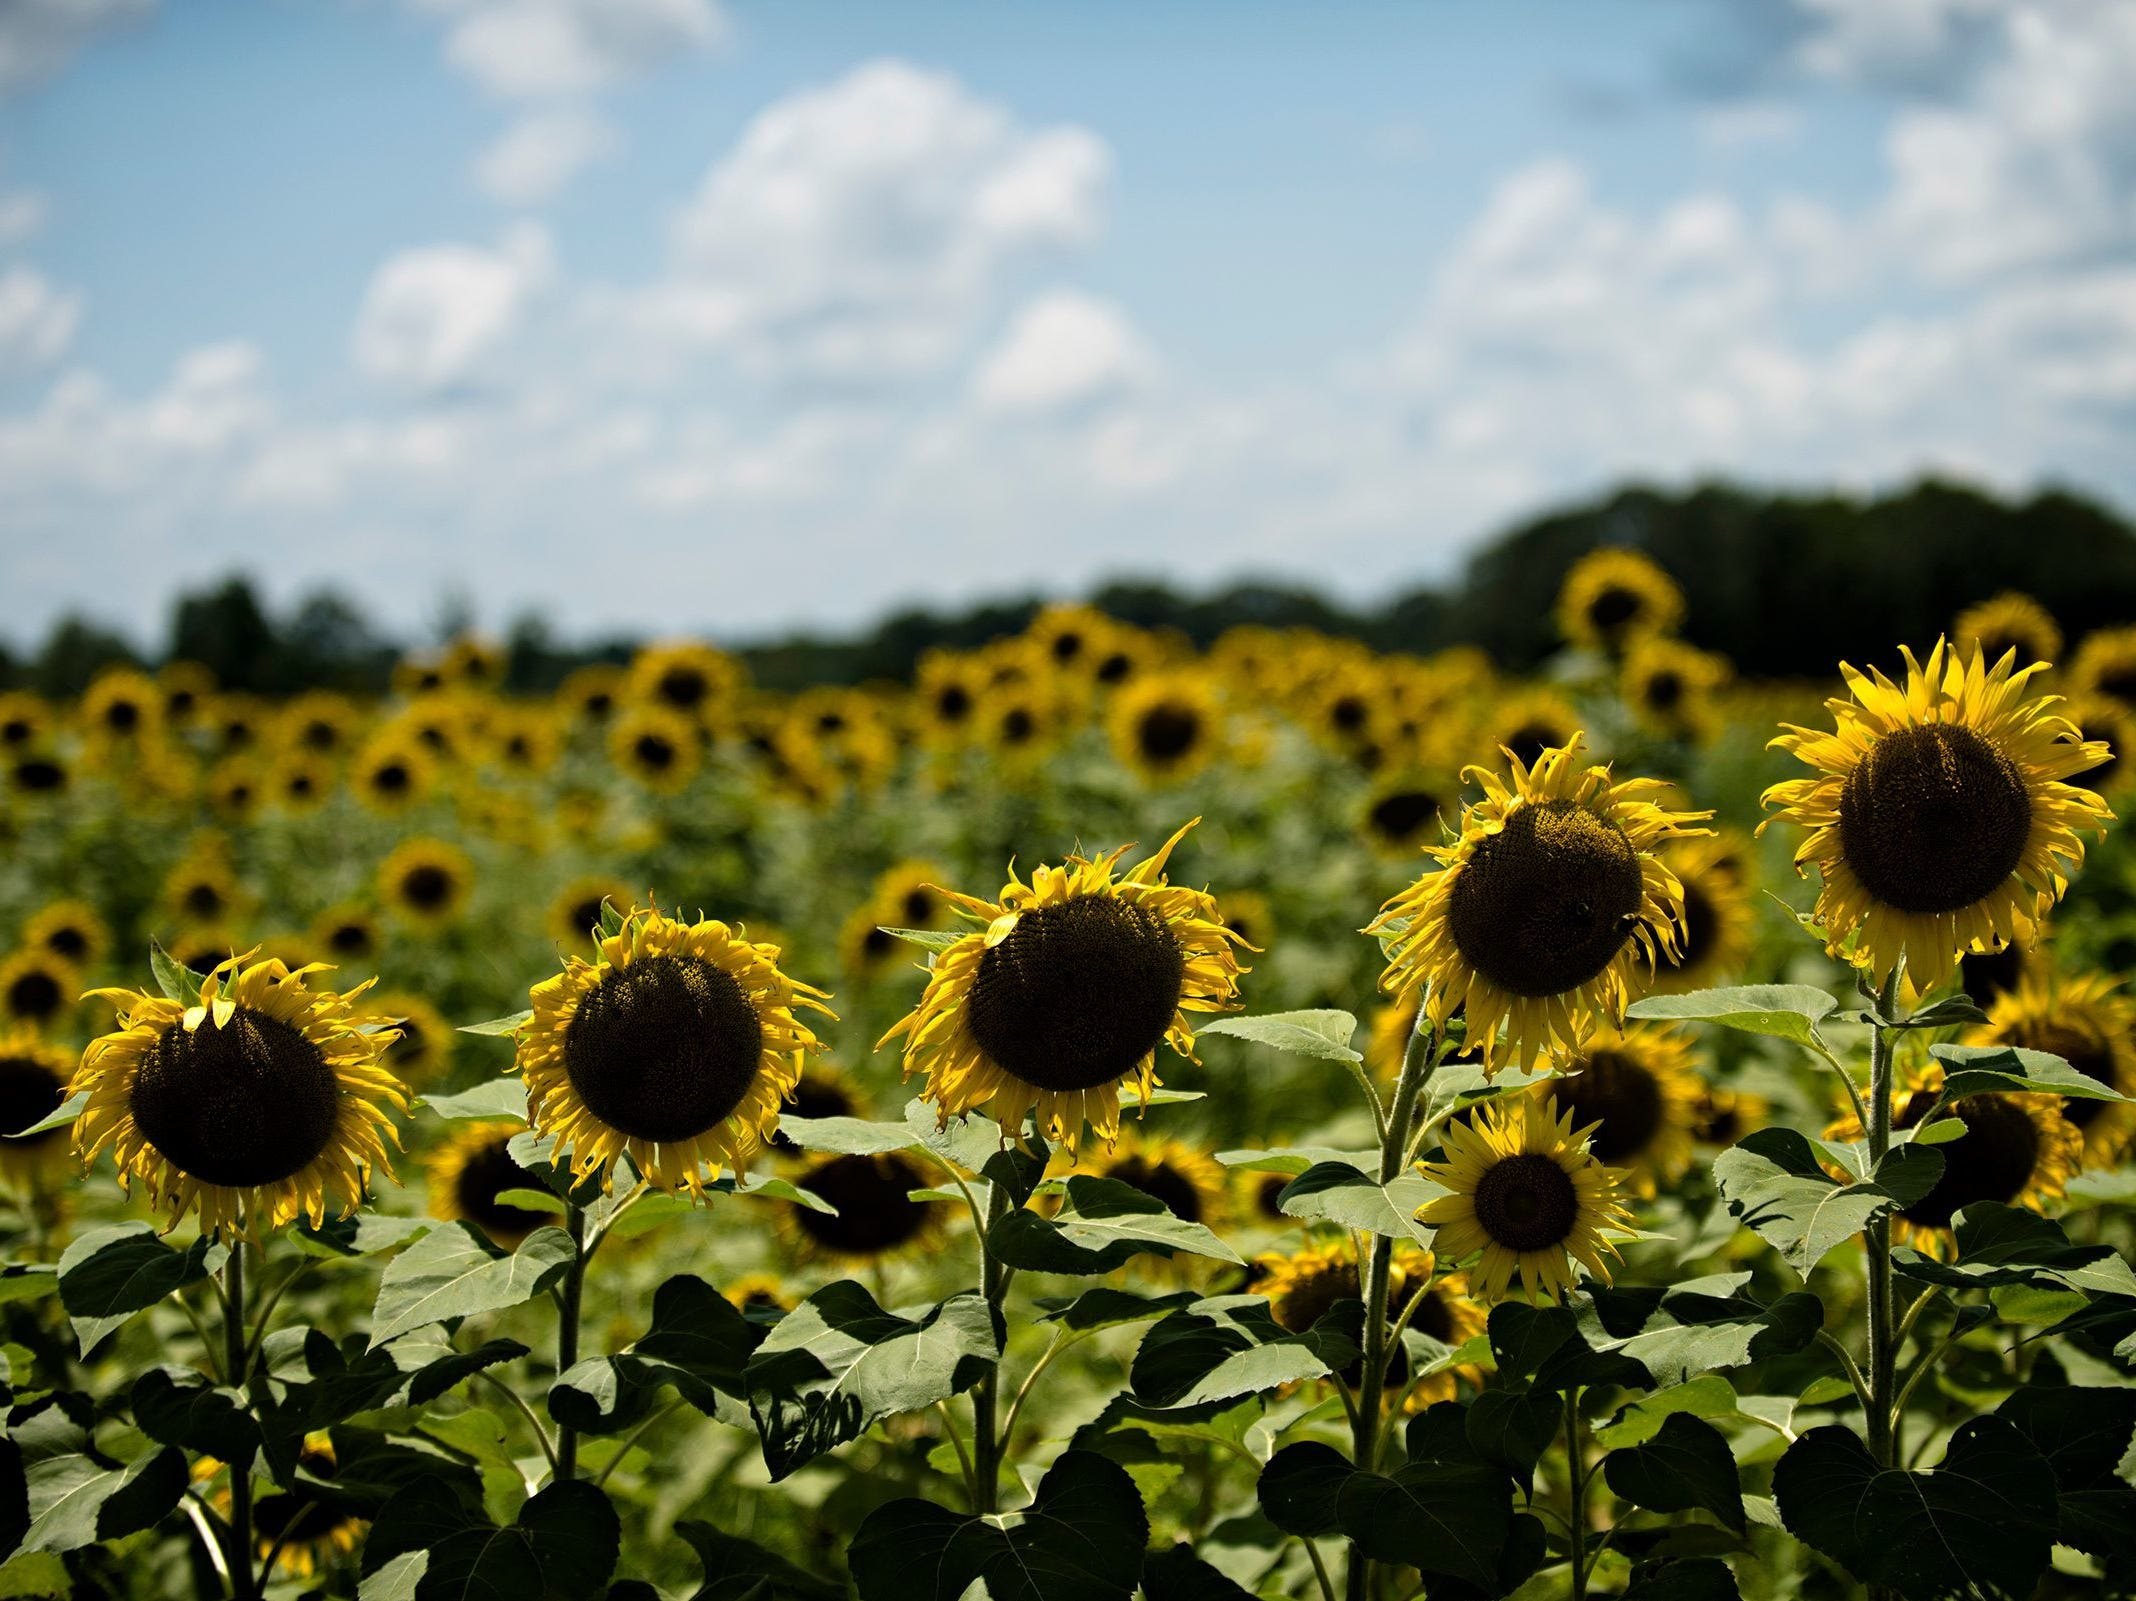 Sunflowers grow in The Sunflower Field on the family farm of Todd and Kim Sheridan in Autauga County on July 18, 2017.